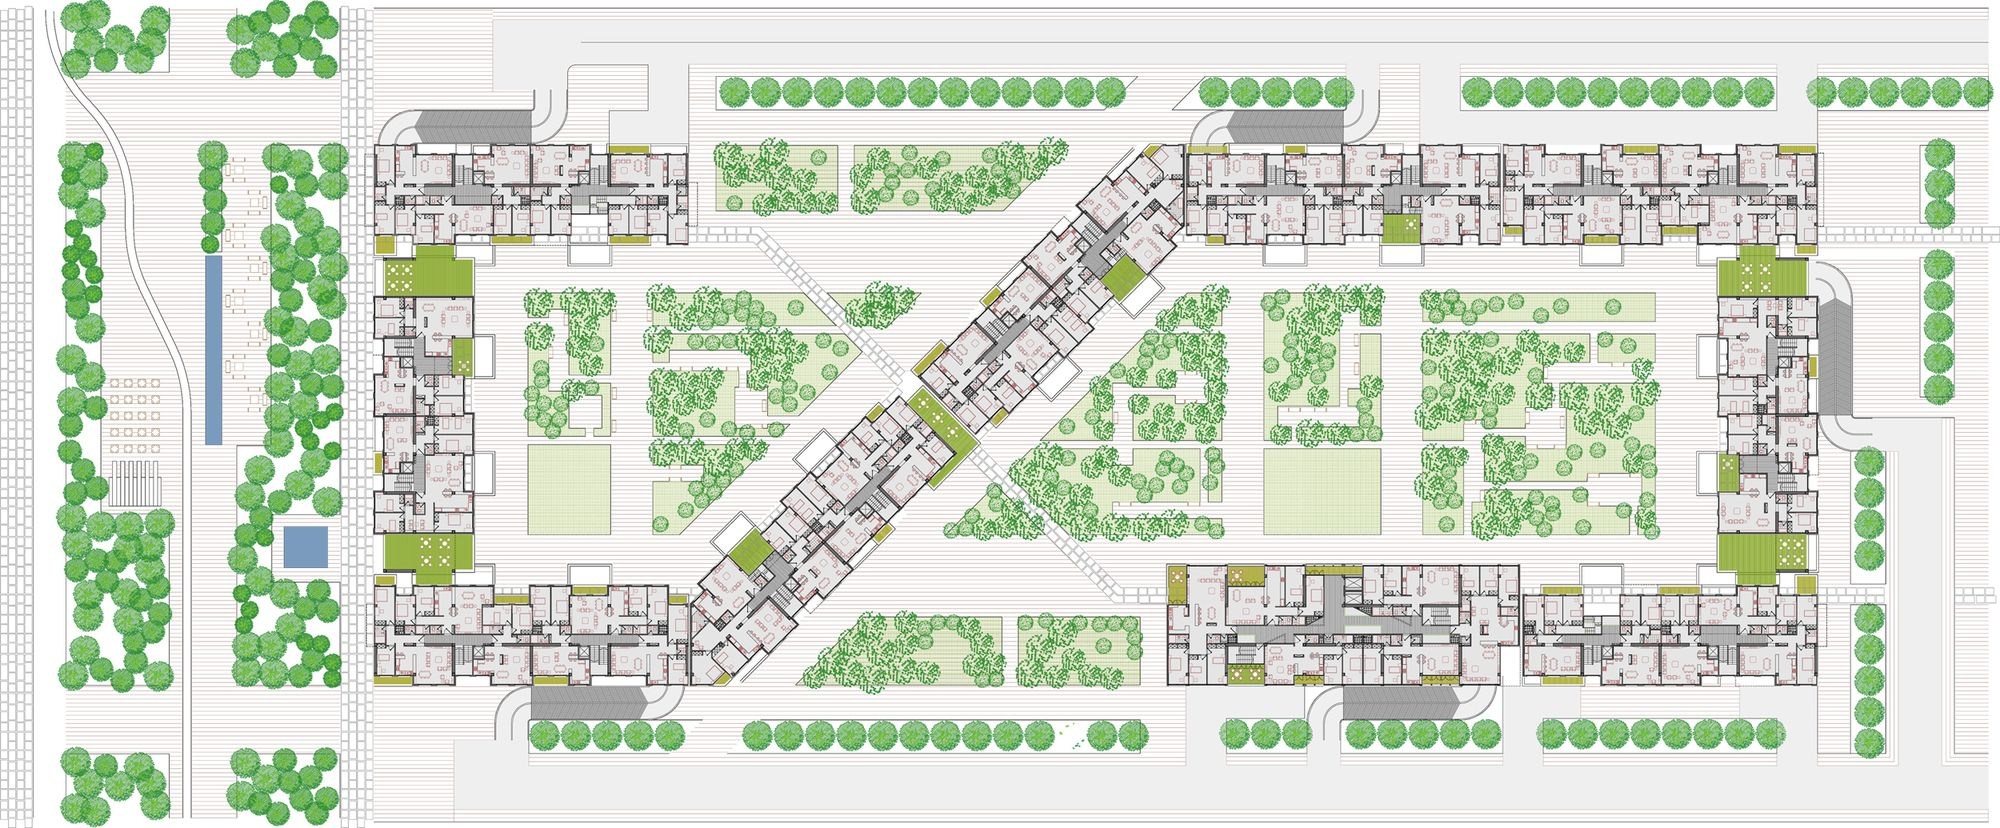 Mehrshahr Residential Complex Proposal Contemporarchitecturban Designers Group Residential Complex Residential Design Urban Planning